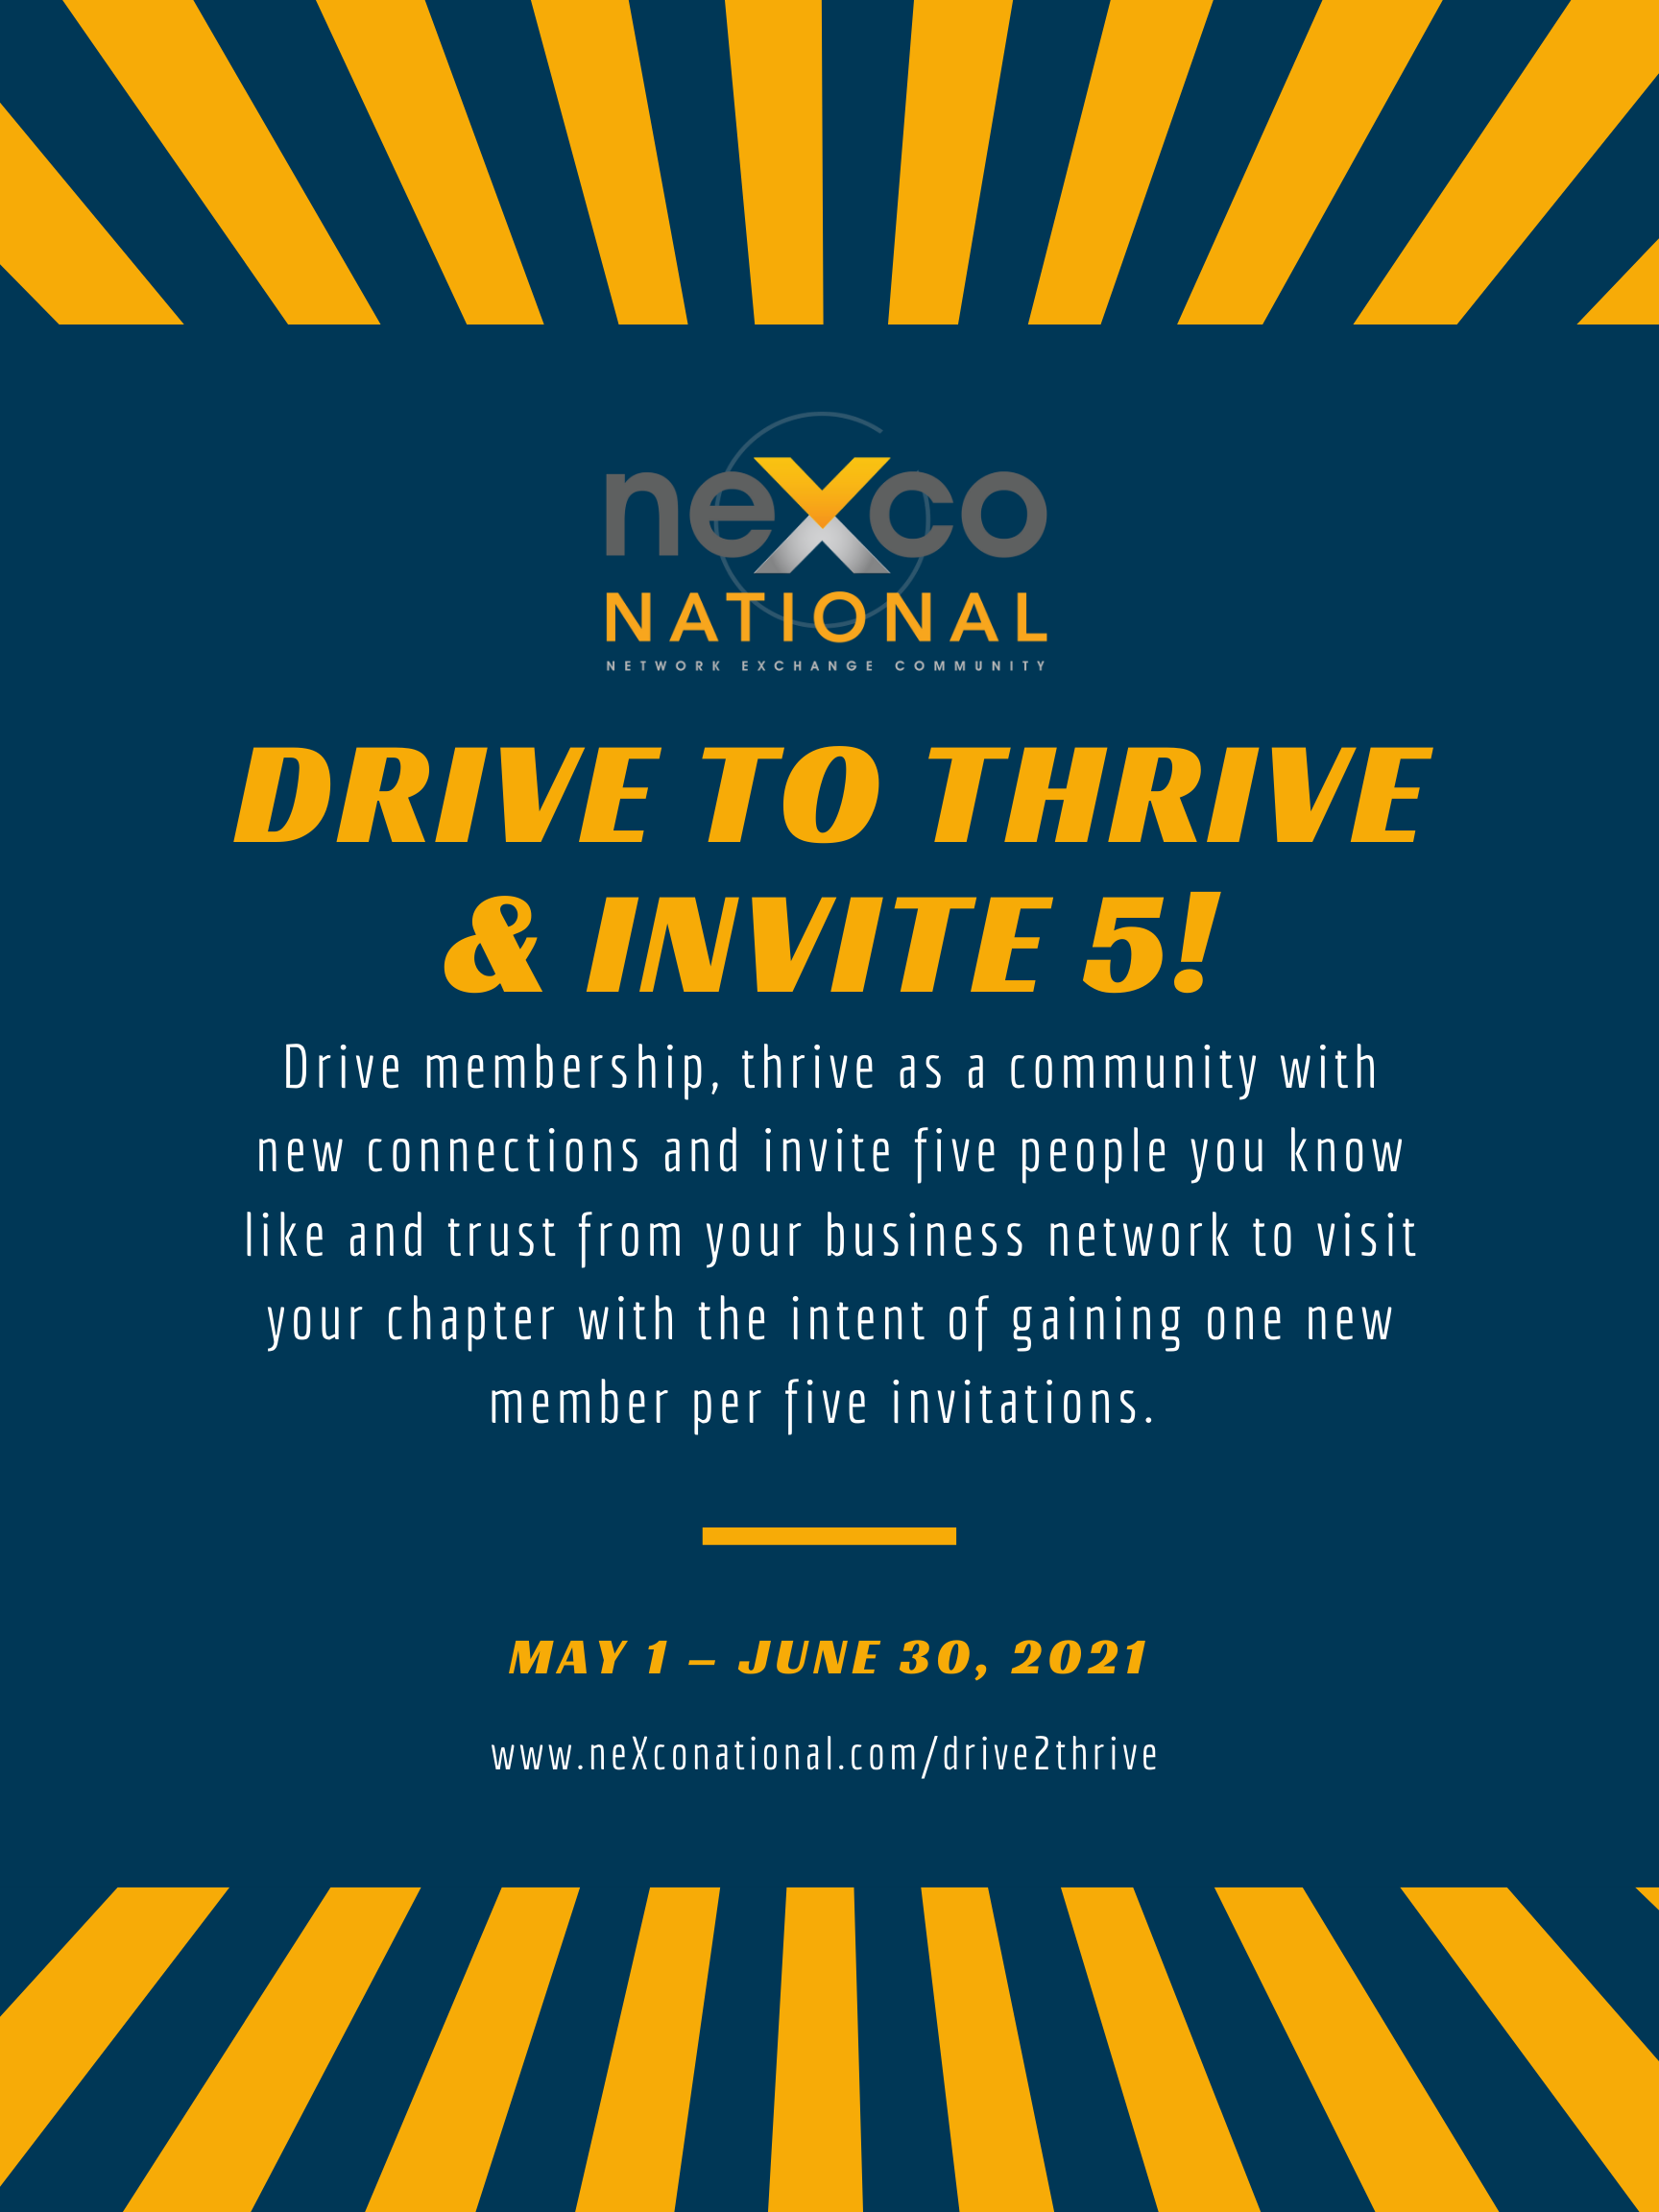 Drive to Thrive & Invite 5!